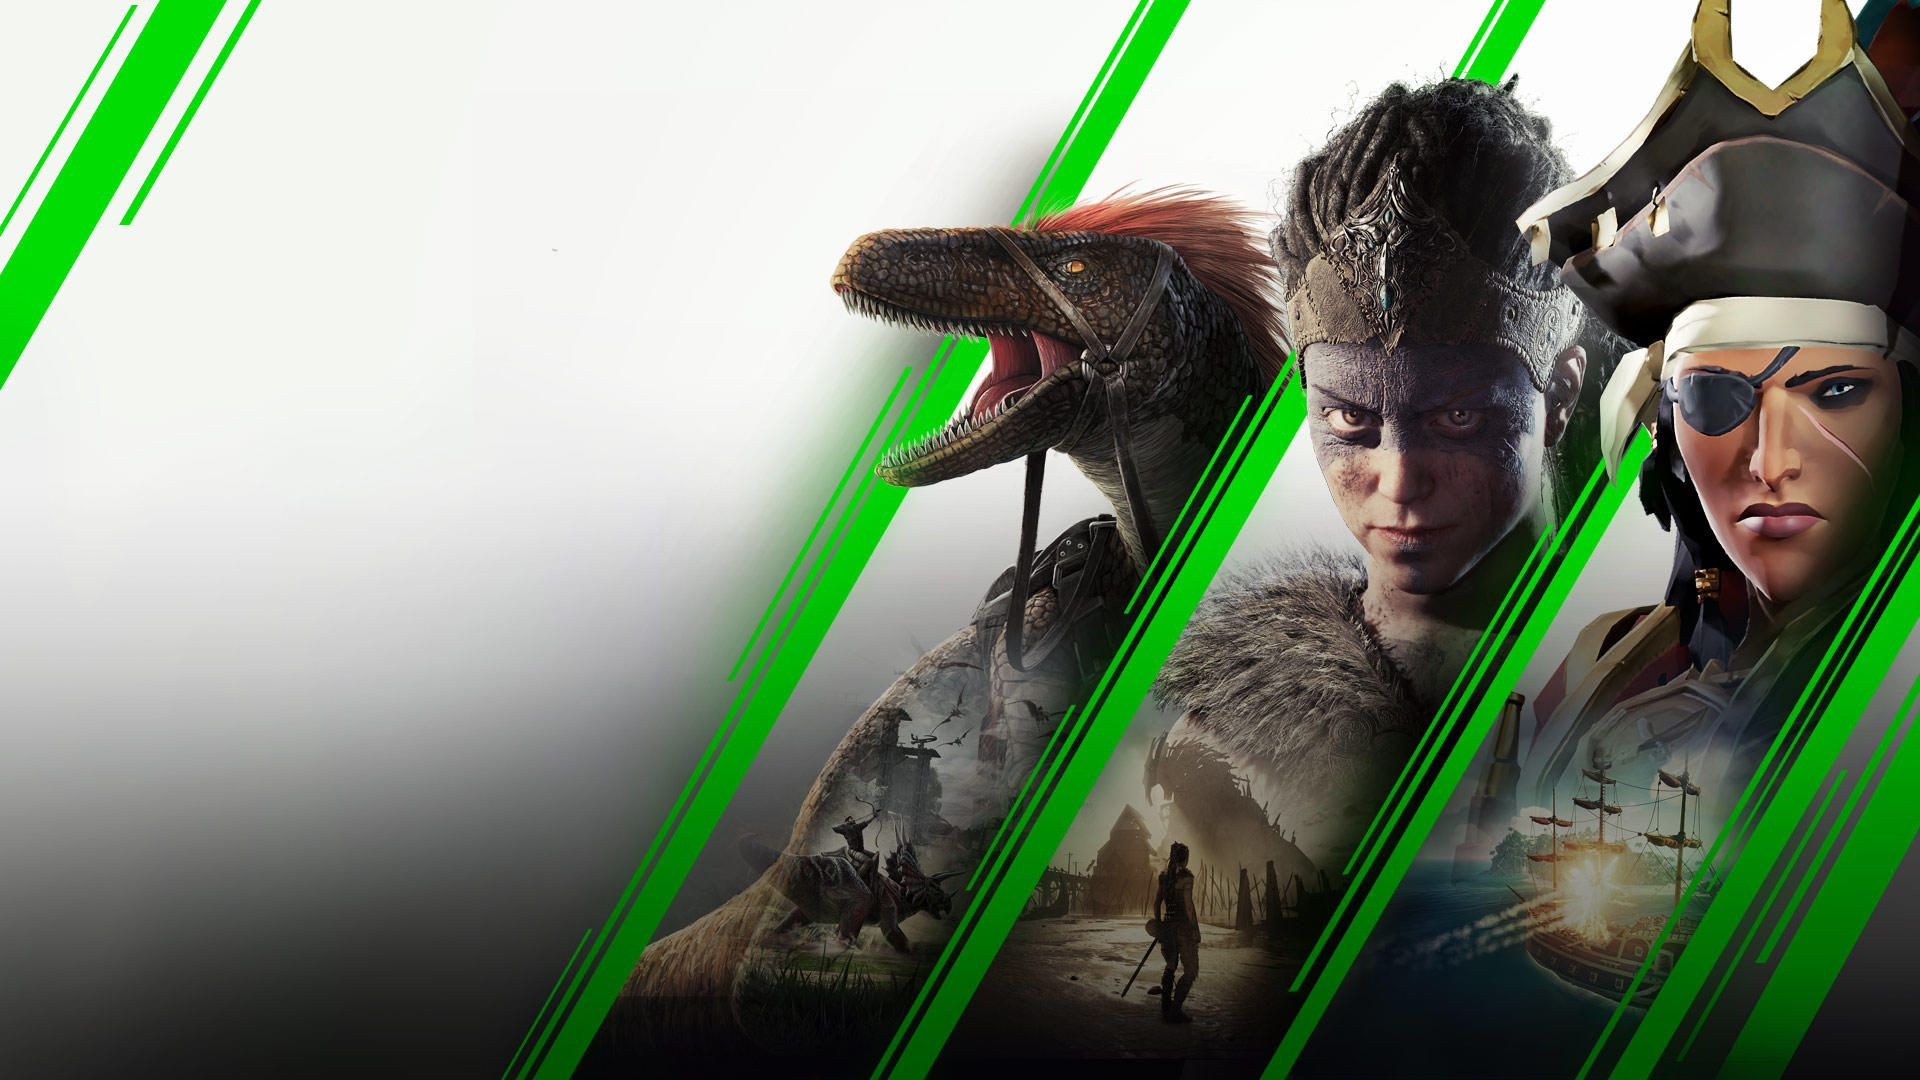 Buy one Xbox Game Pass Ultimate code, get one free in 2020